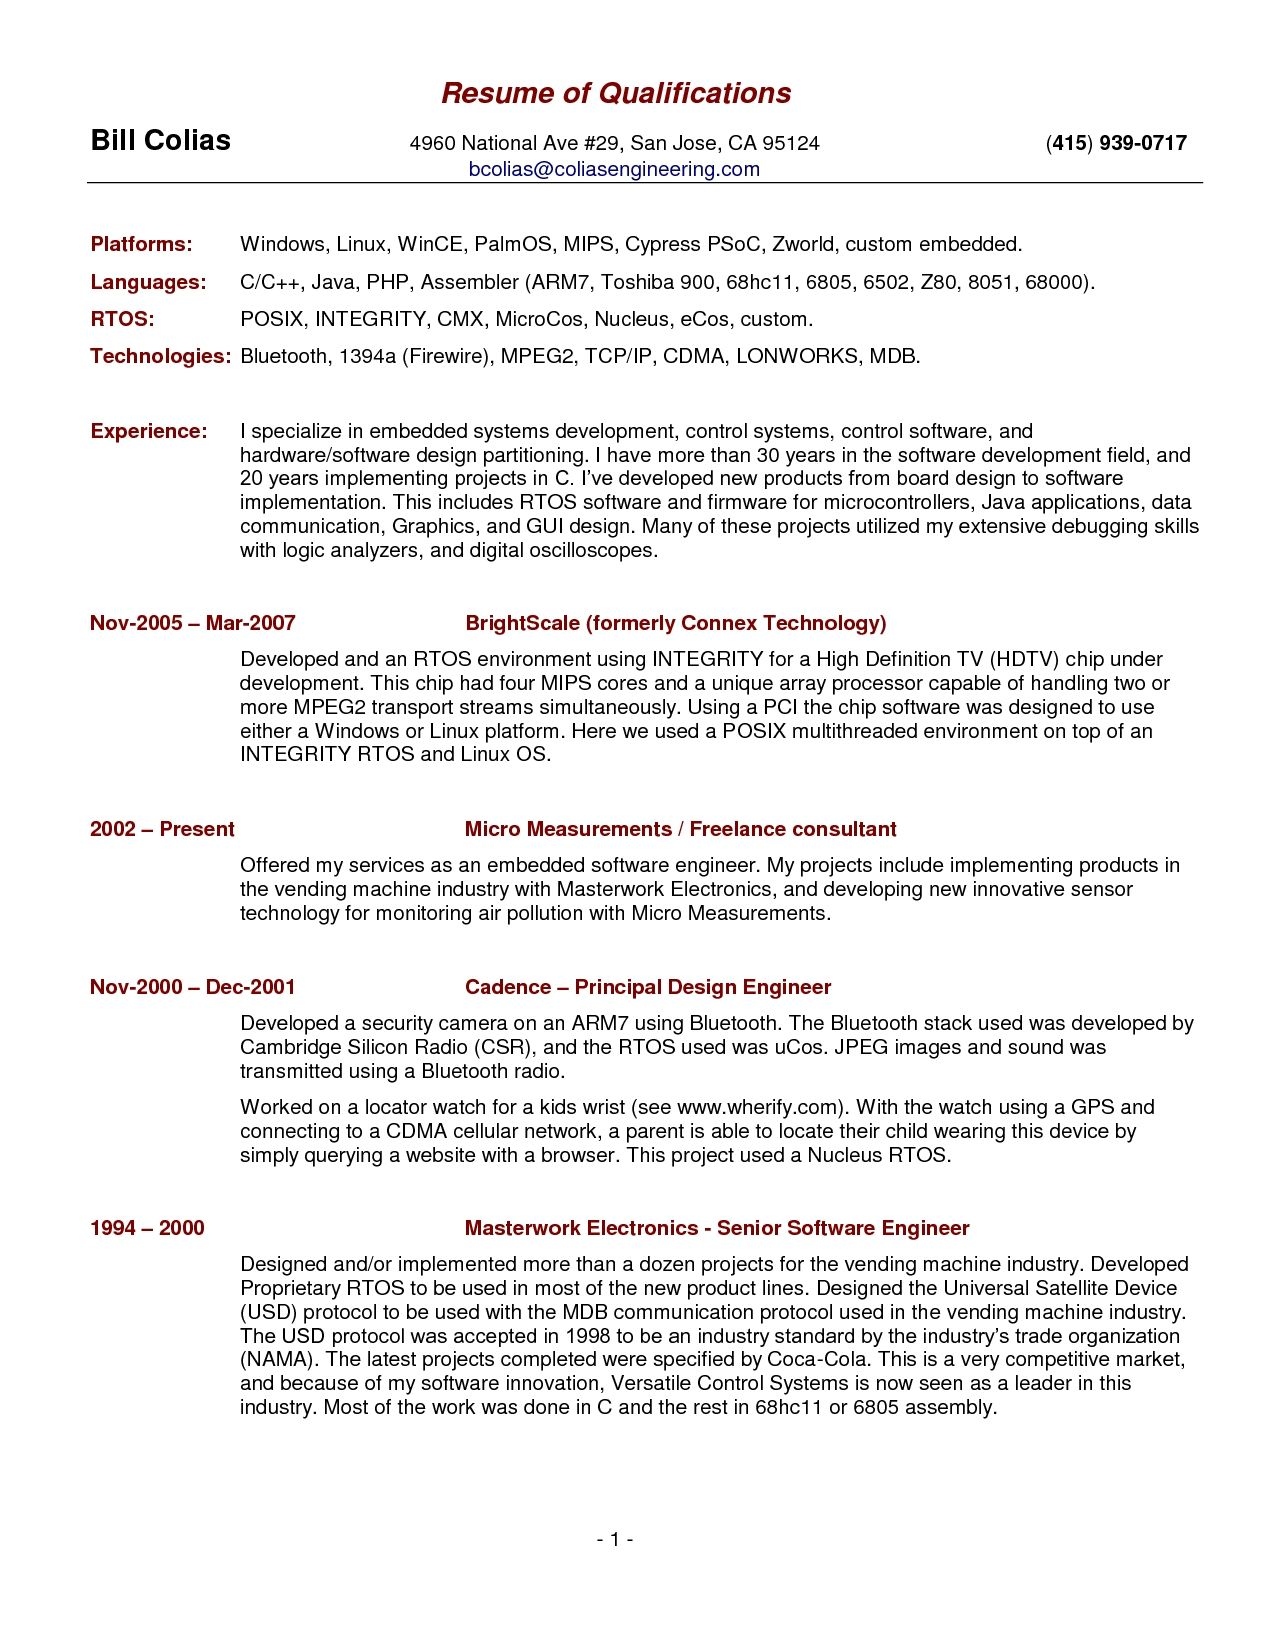 Resume Examples Of Skills Qualifications For A Resume Examples 7f8ea3a2a New Resume